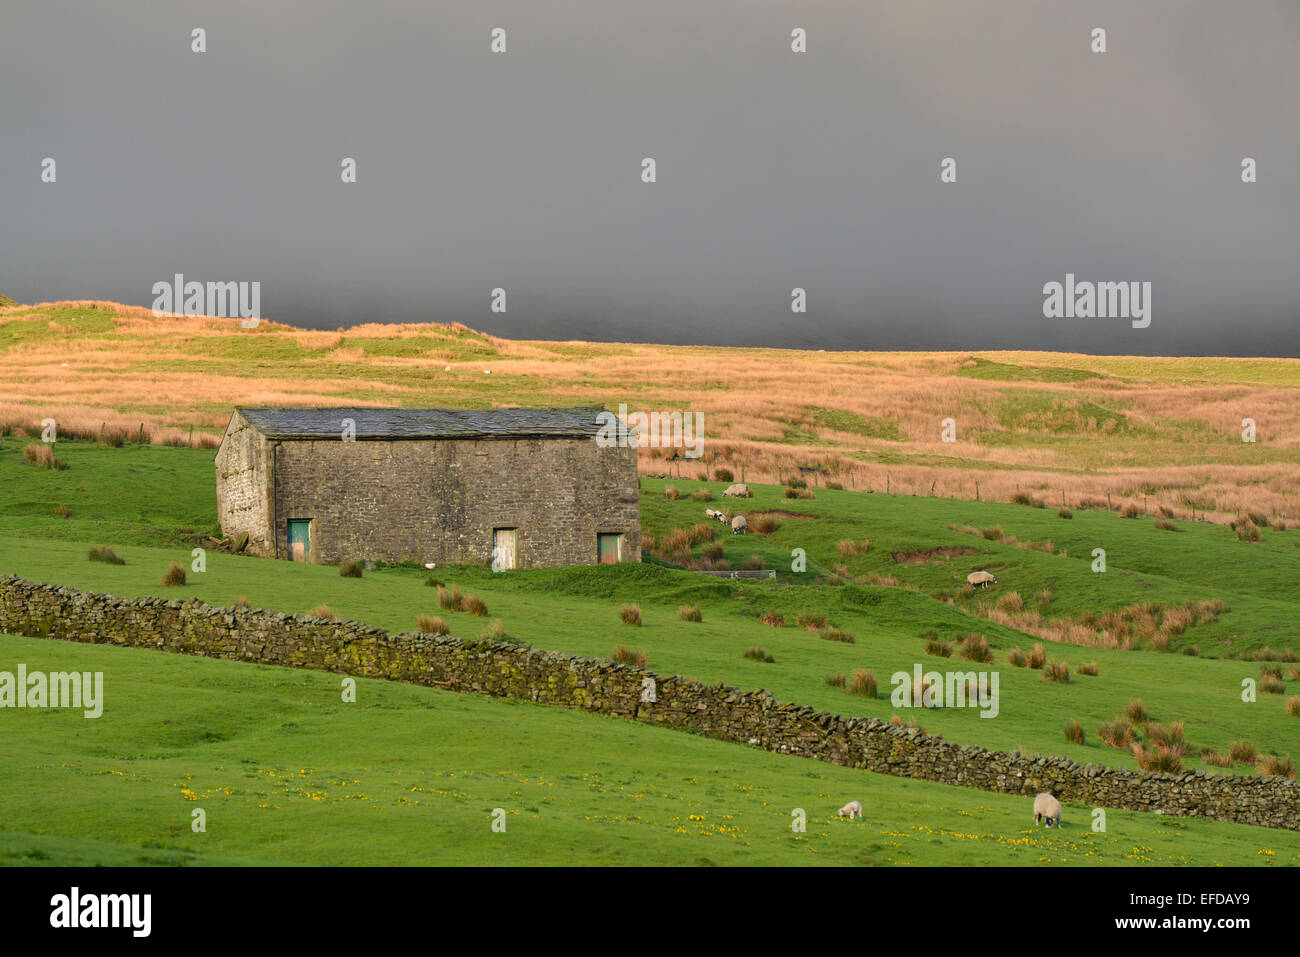 Traditional stone barn in upland pasture, Cumbria, UK. - Stock Image